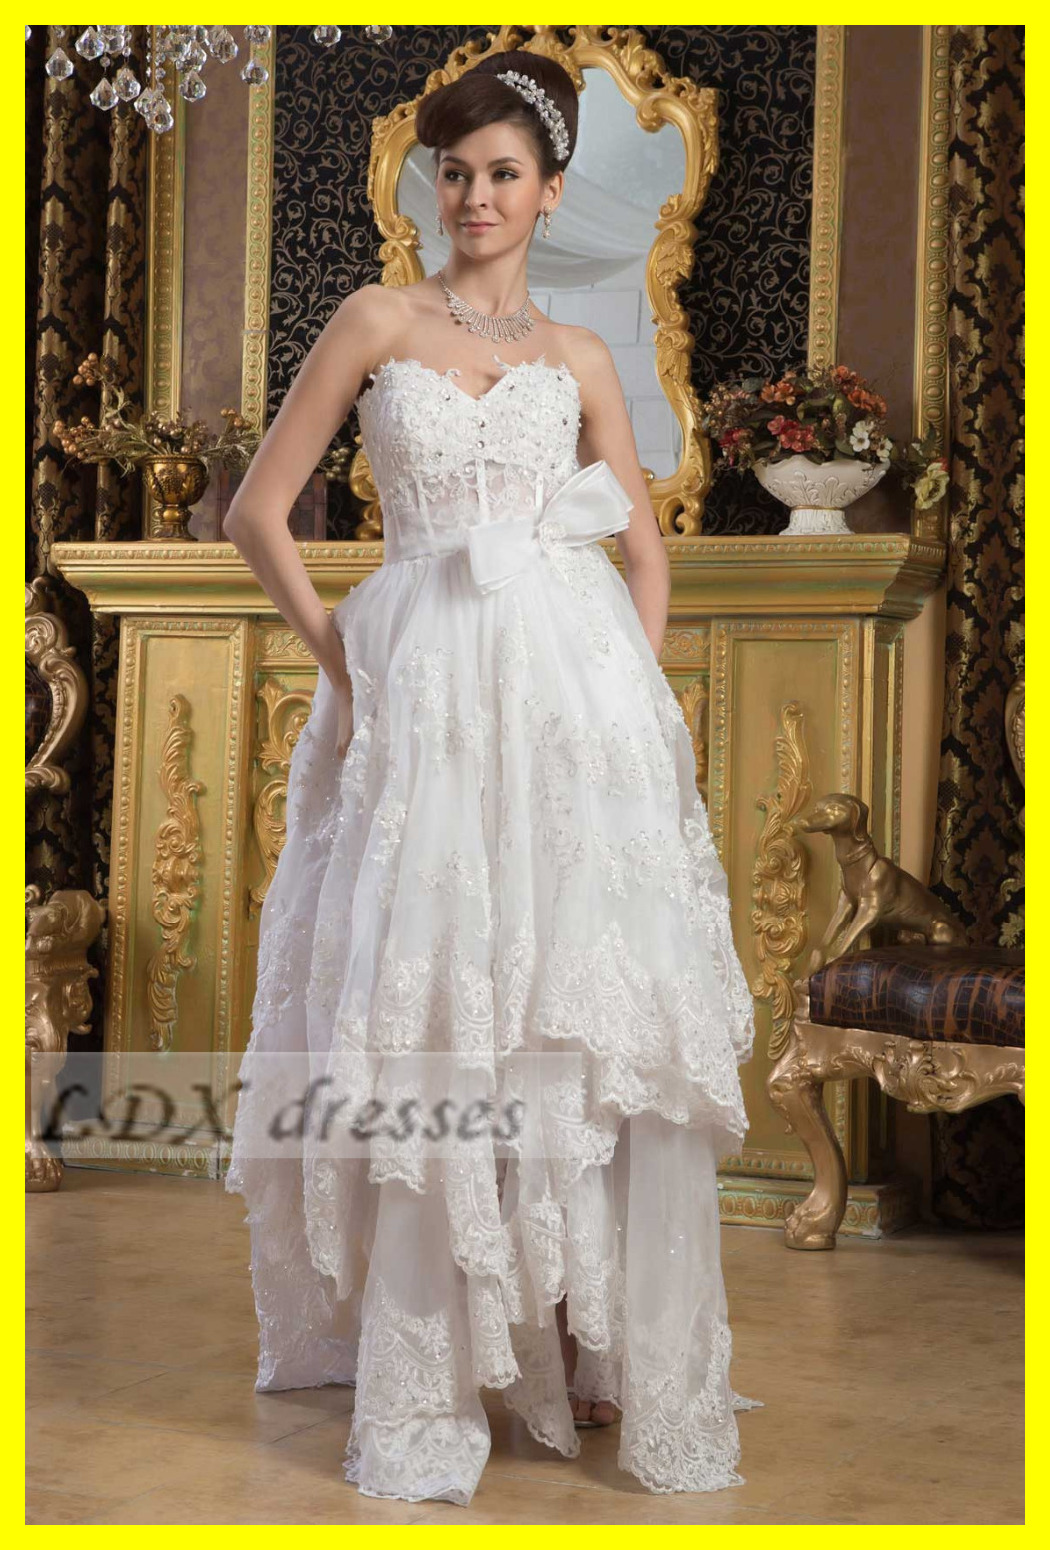 Off White Wedding Dresses Casual Beach Dress Baby Weddings A-Line Floor-Length None Appliques Sweetheart Off The S 2015 Discount(China (Mainland))